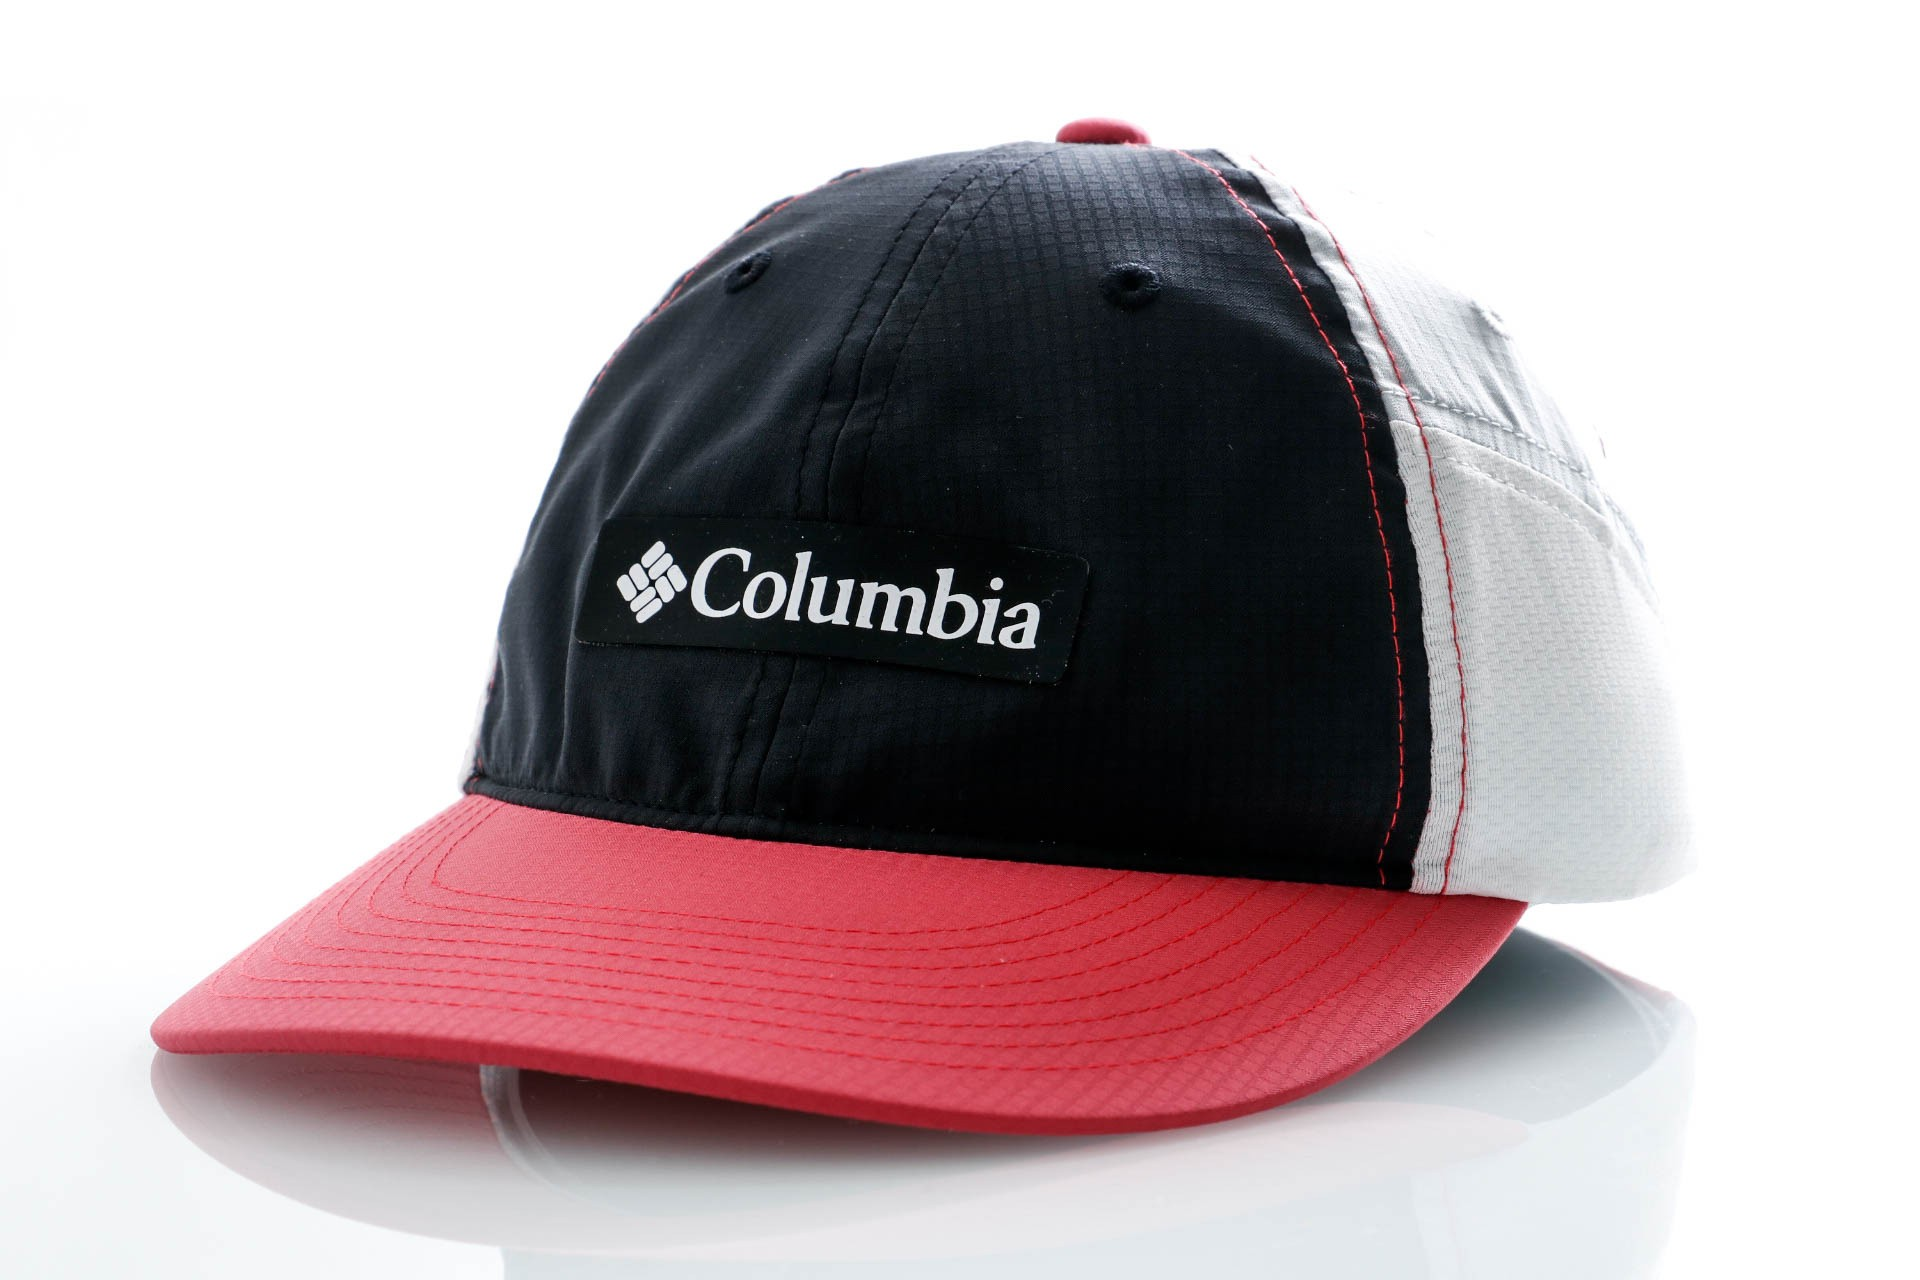 Foto van Columbia 5 Panel Cap Ripstop Ball Cap-Black, Rouge Pi Black, Rouge Pink, Cirrus Grey, White 1886811